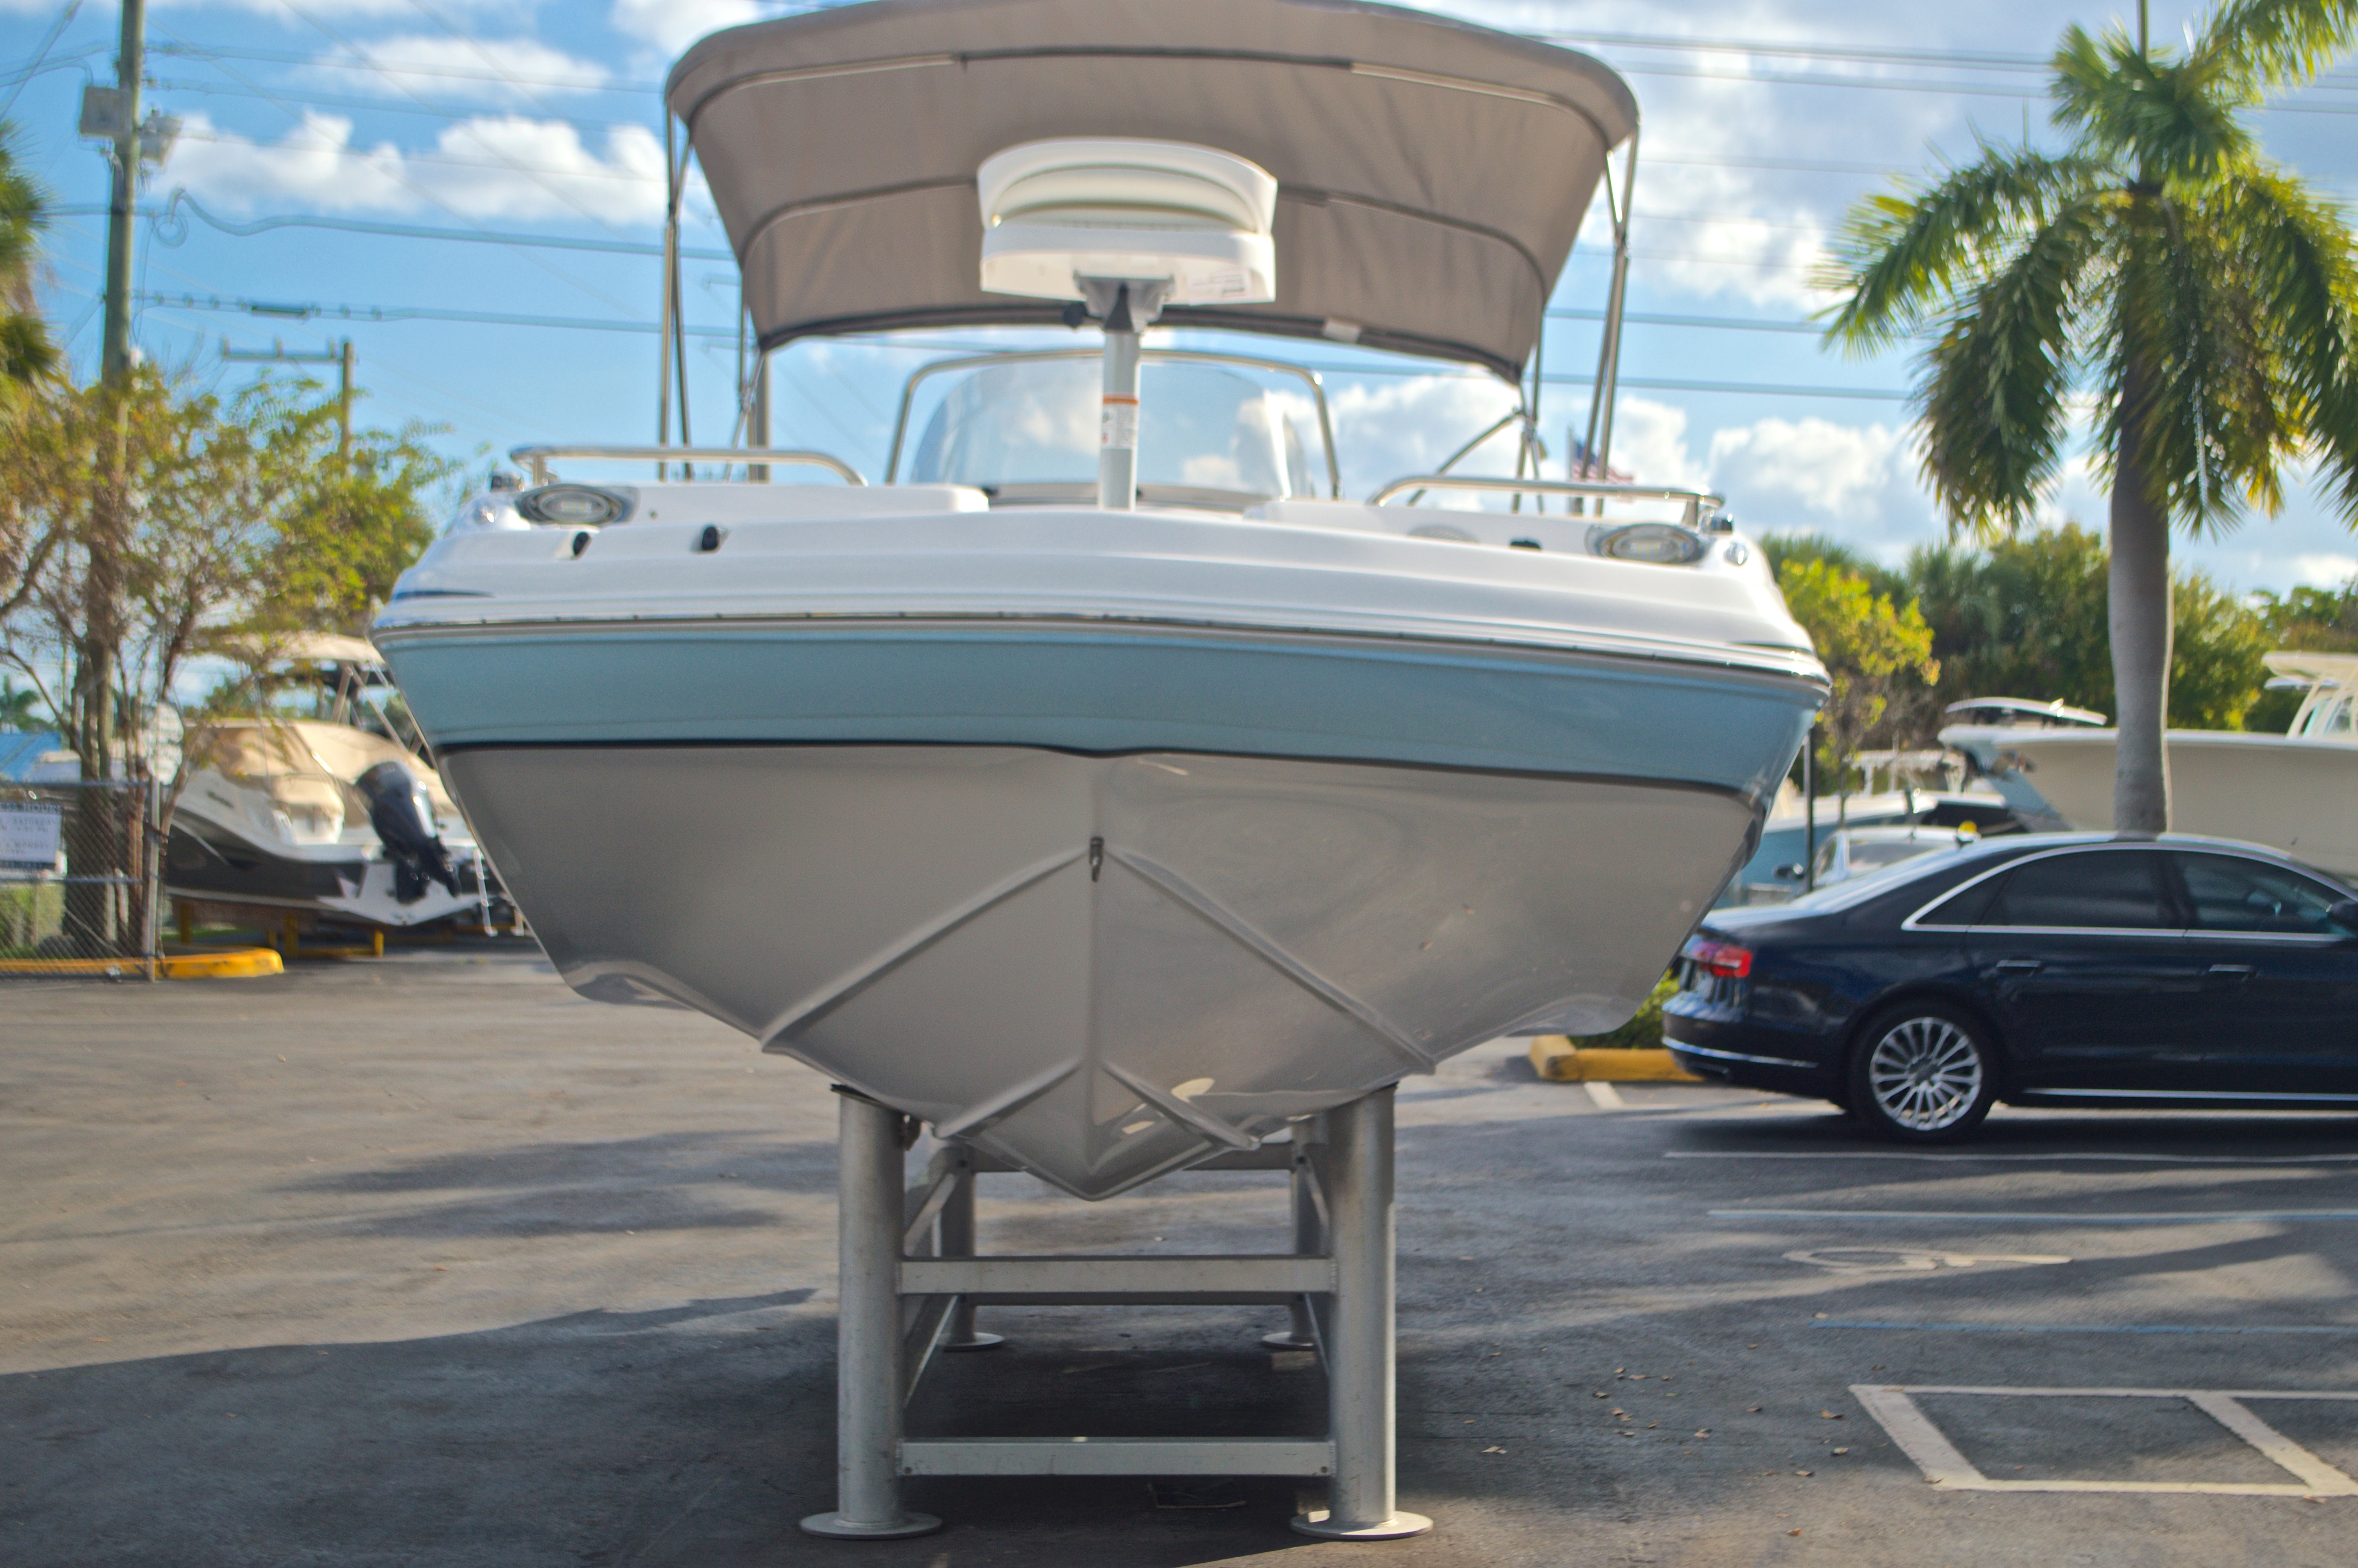 Thumbnail 2 for New 2017 Hurricane Sundeck Sport SS 231 OB boat for sale in West Palm Beach, FL